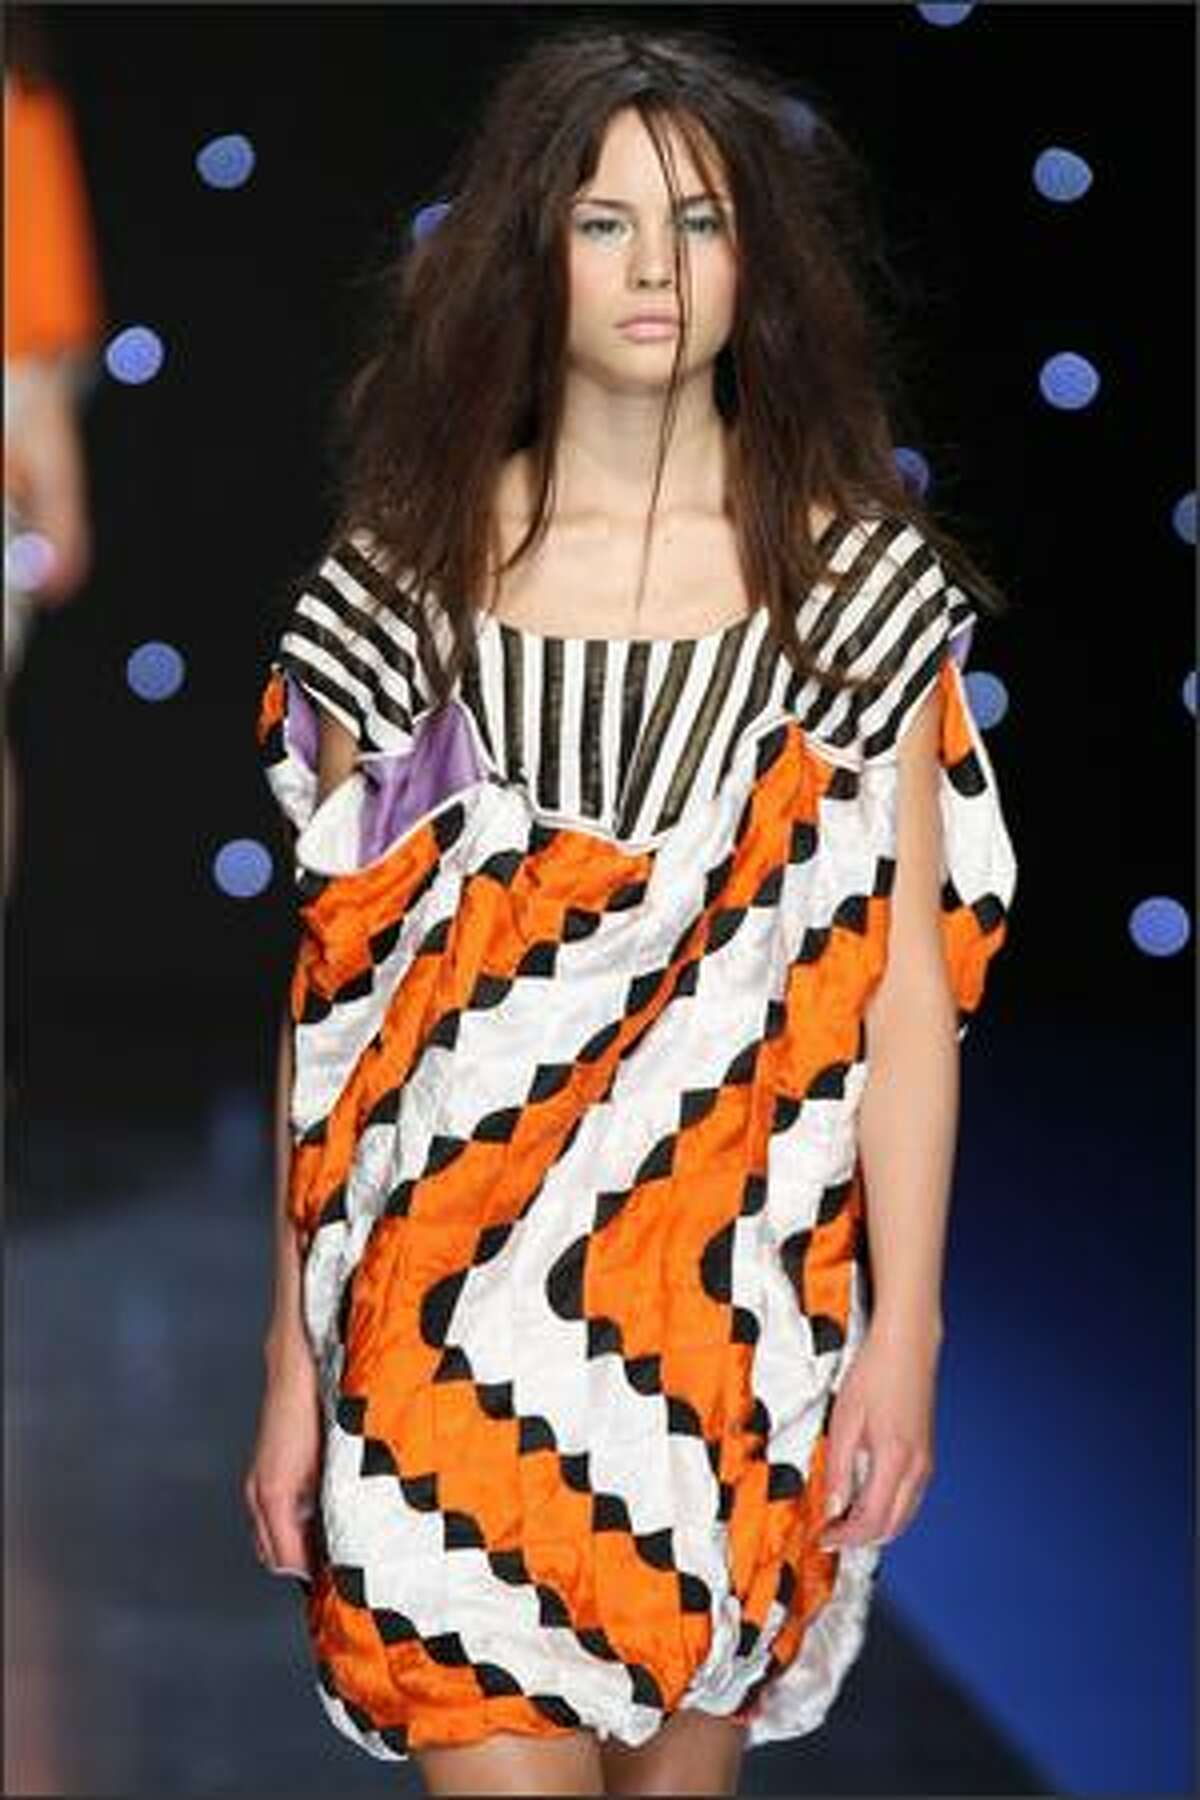 A model presents a creation by Japanese designer Tsumori Chisato during the Spring/Summer 2008 ready-to-wear collection show in Paris.